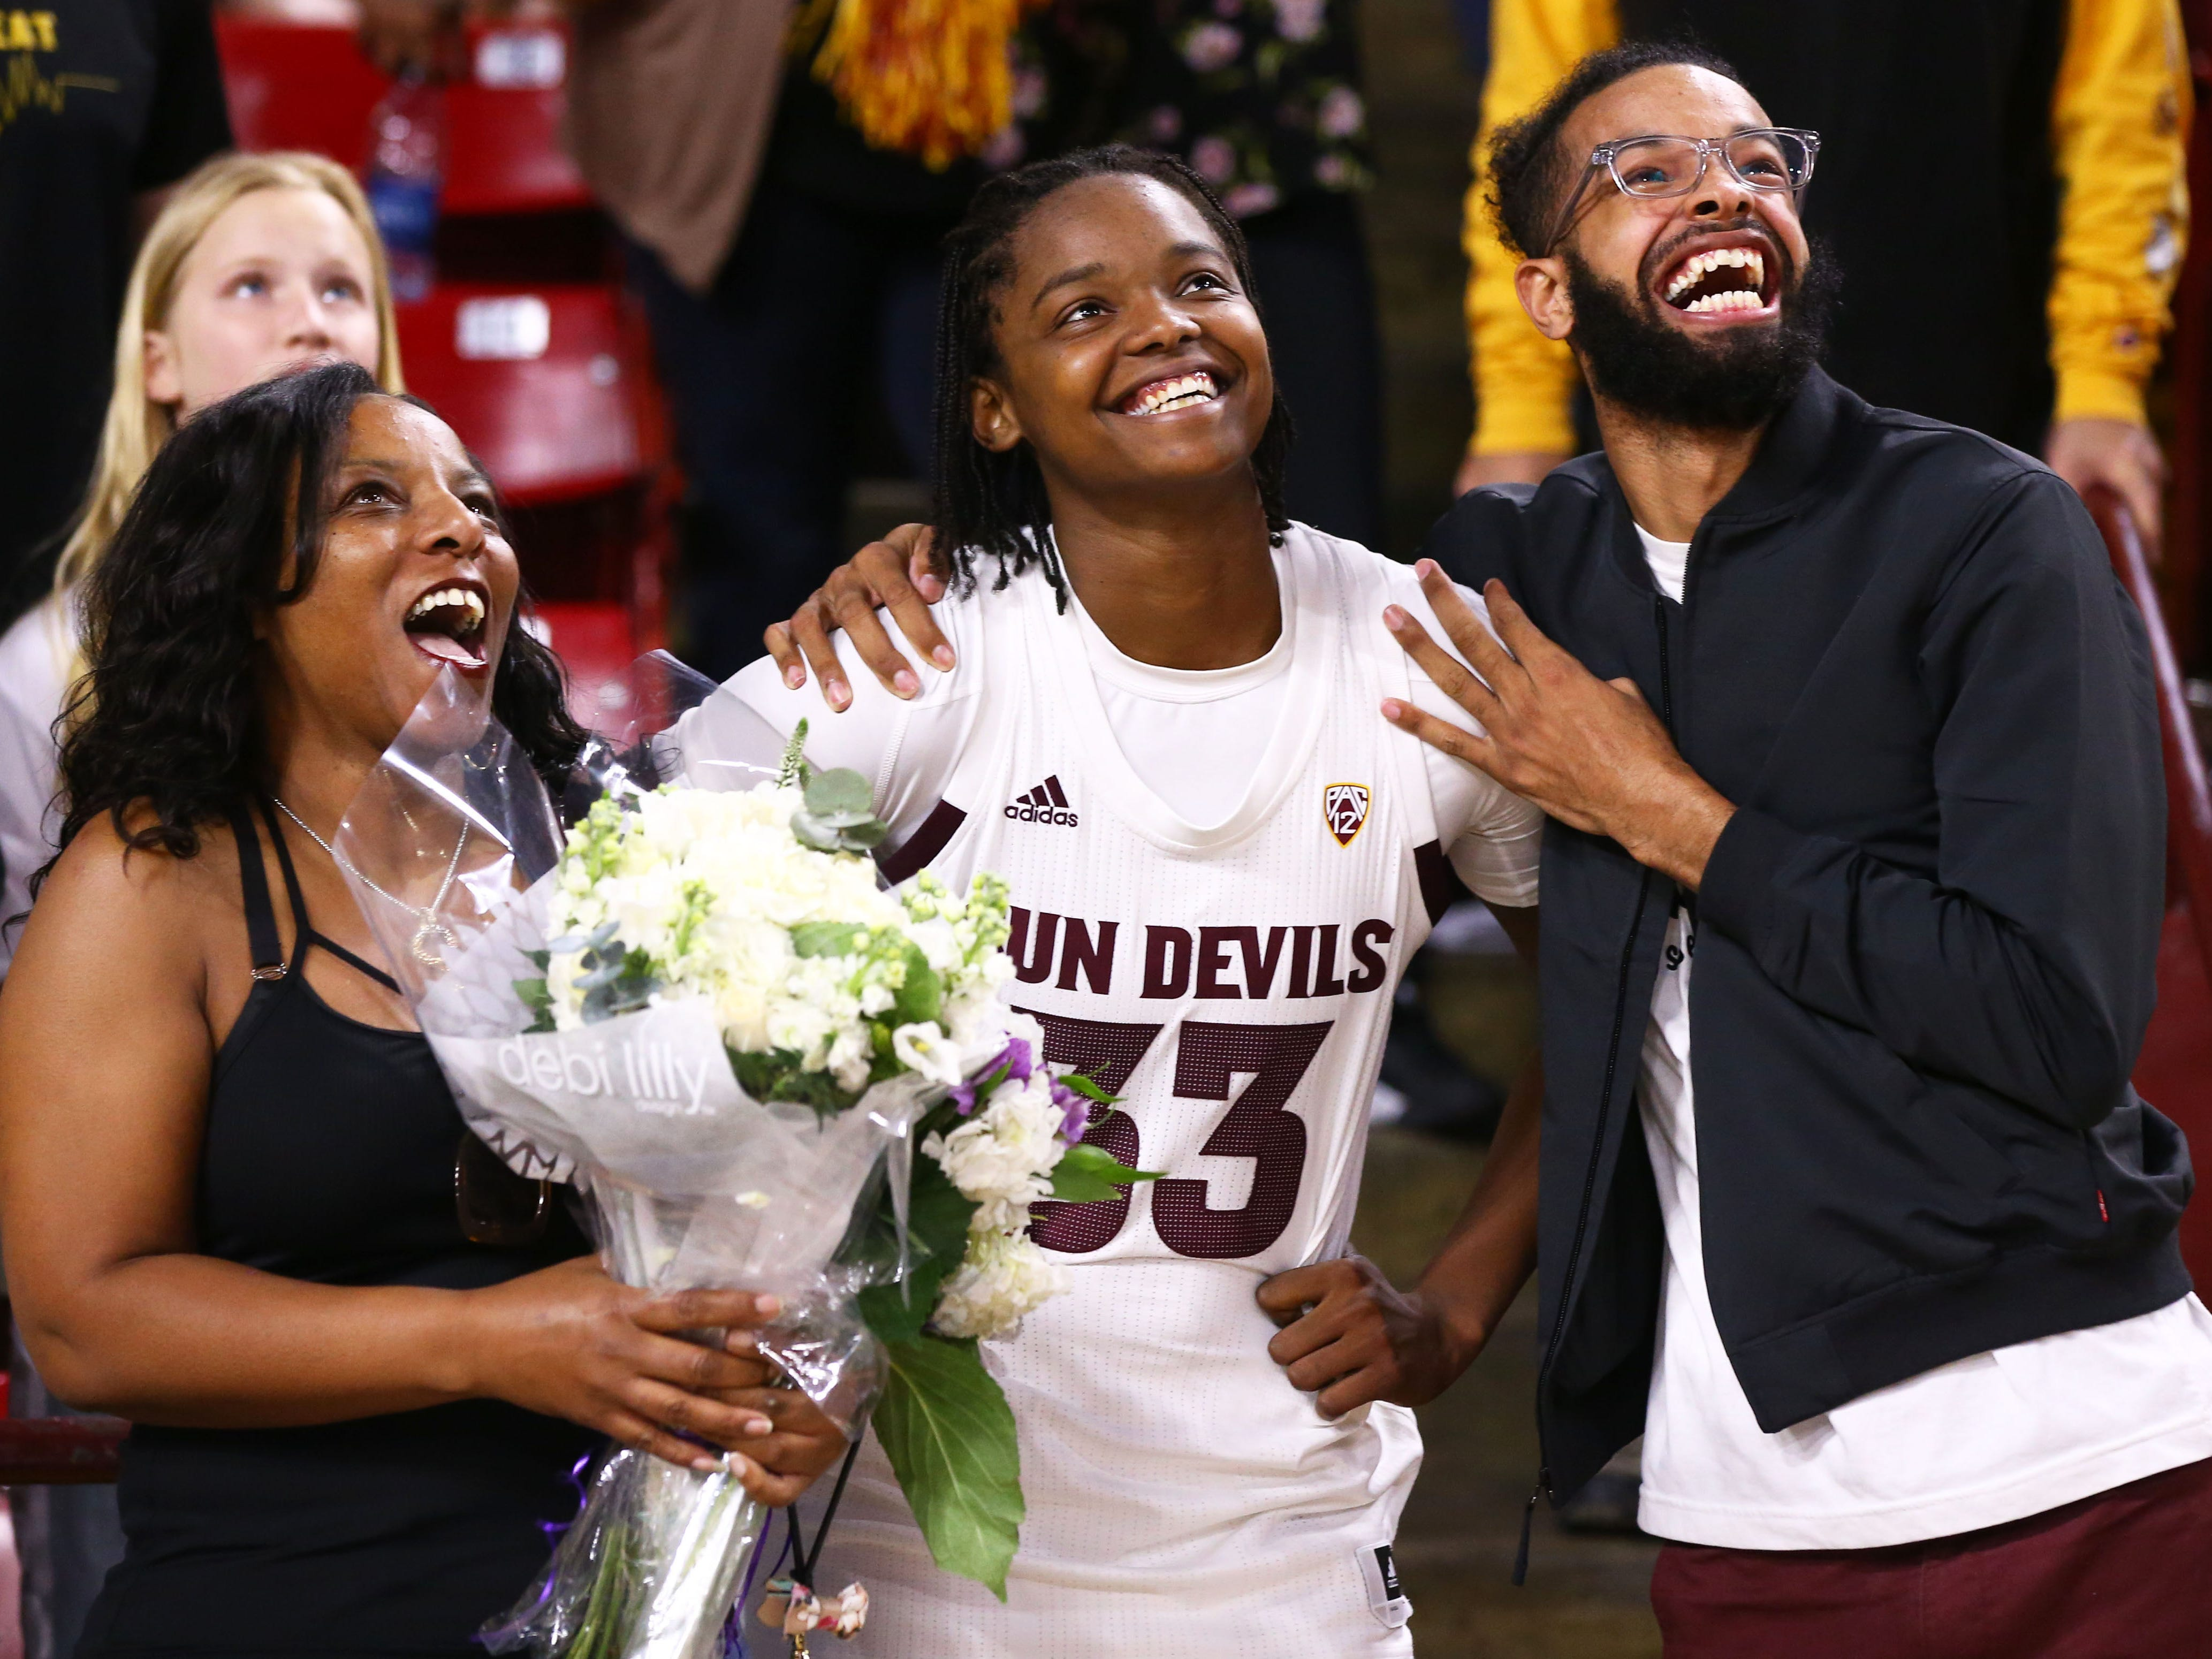 Arizona State Sun Devils center Charnea Johnson-Chapman (33) during senior day ceremonies on Mar. 3, 2019, at Wells Fargo Arena in Tempe, Ariz.